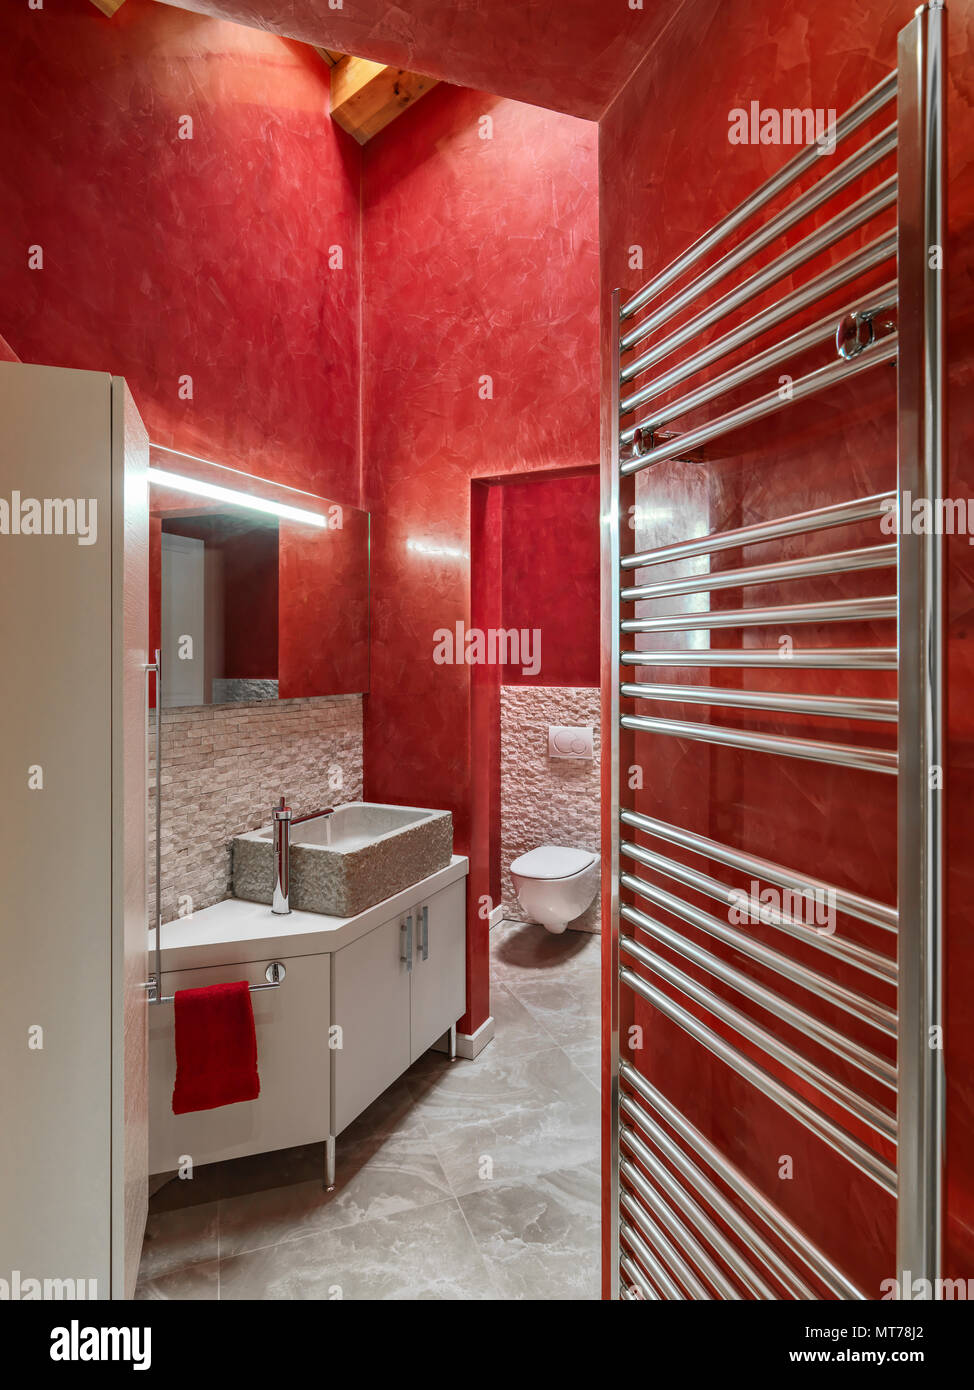 modern bathroom interior with red wall, in the foreground the wooden cabinet with stone countertop washbasin and chrome radiator annd wood floor - Stock Image